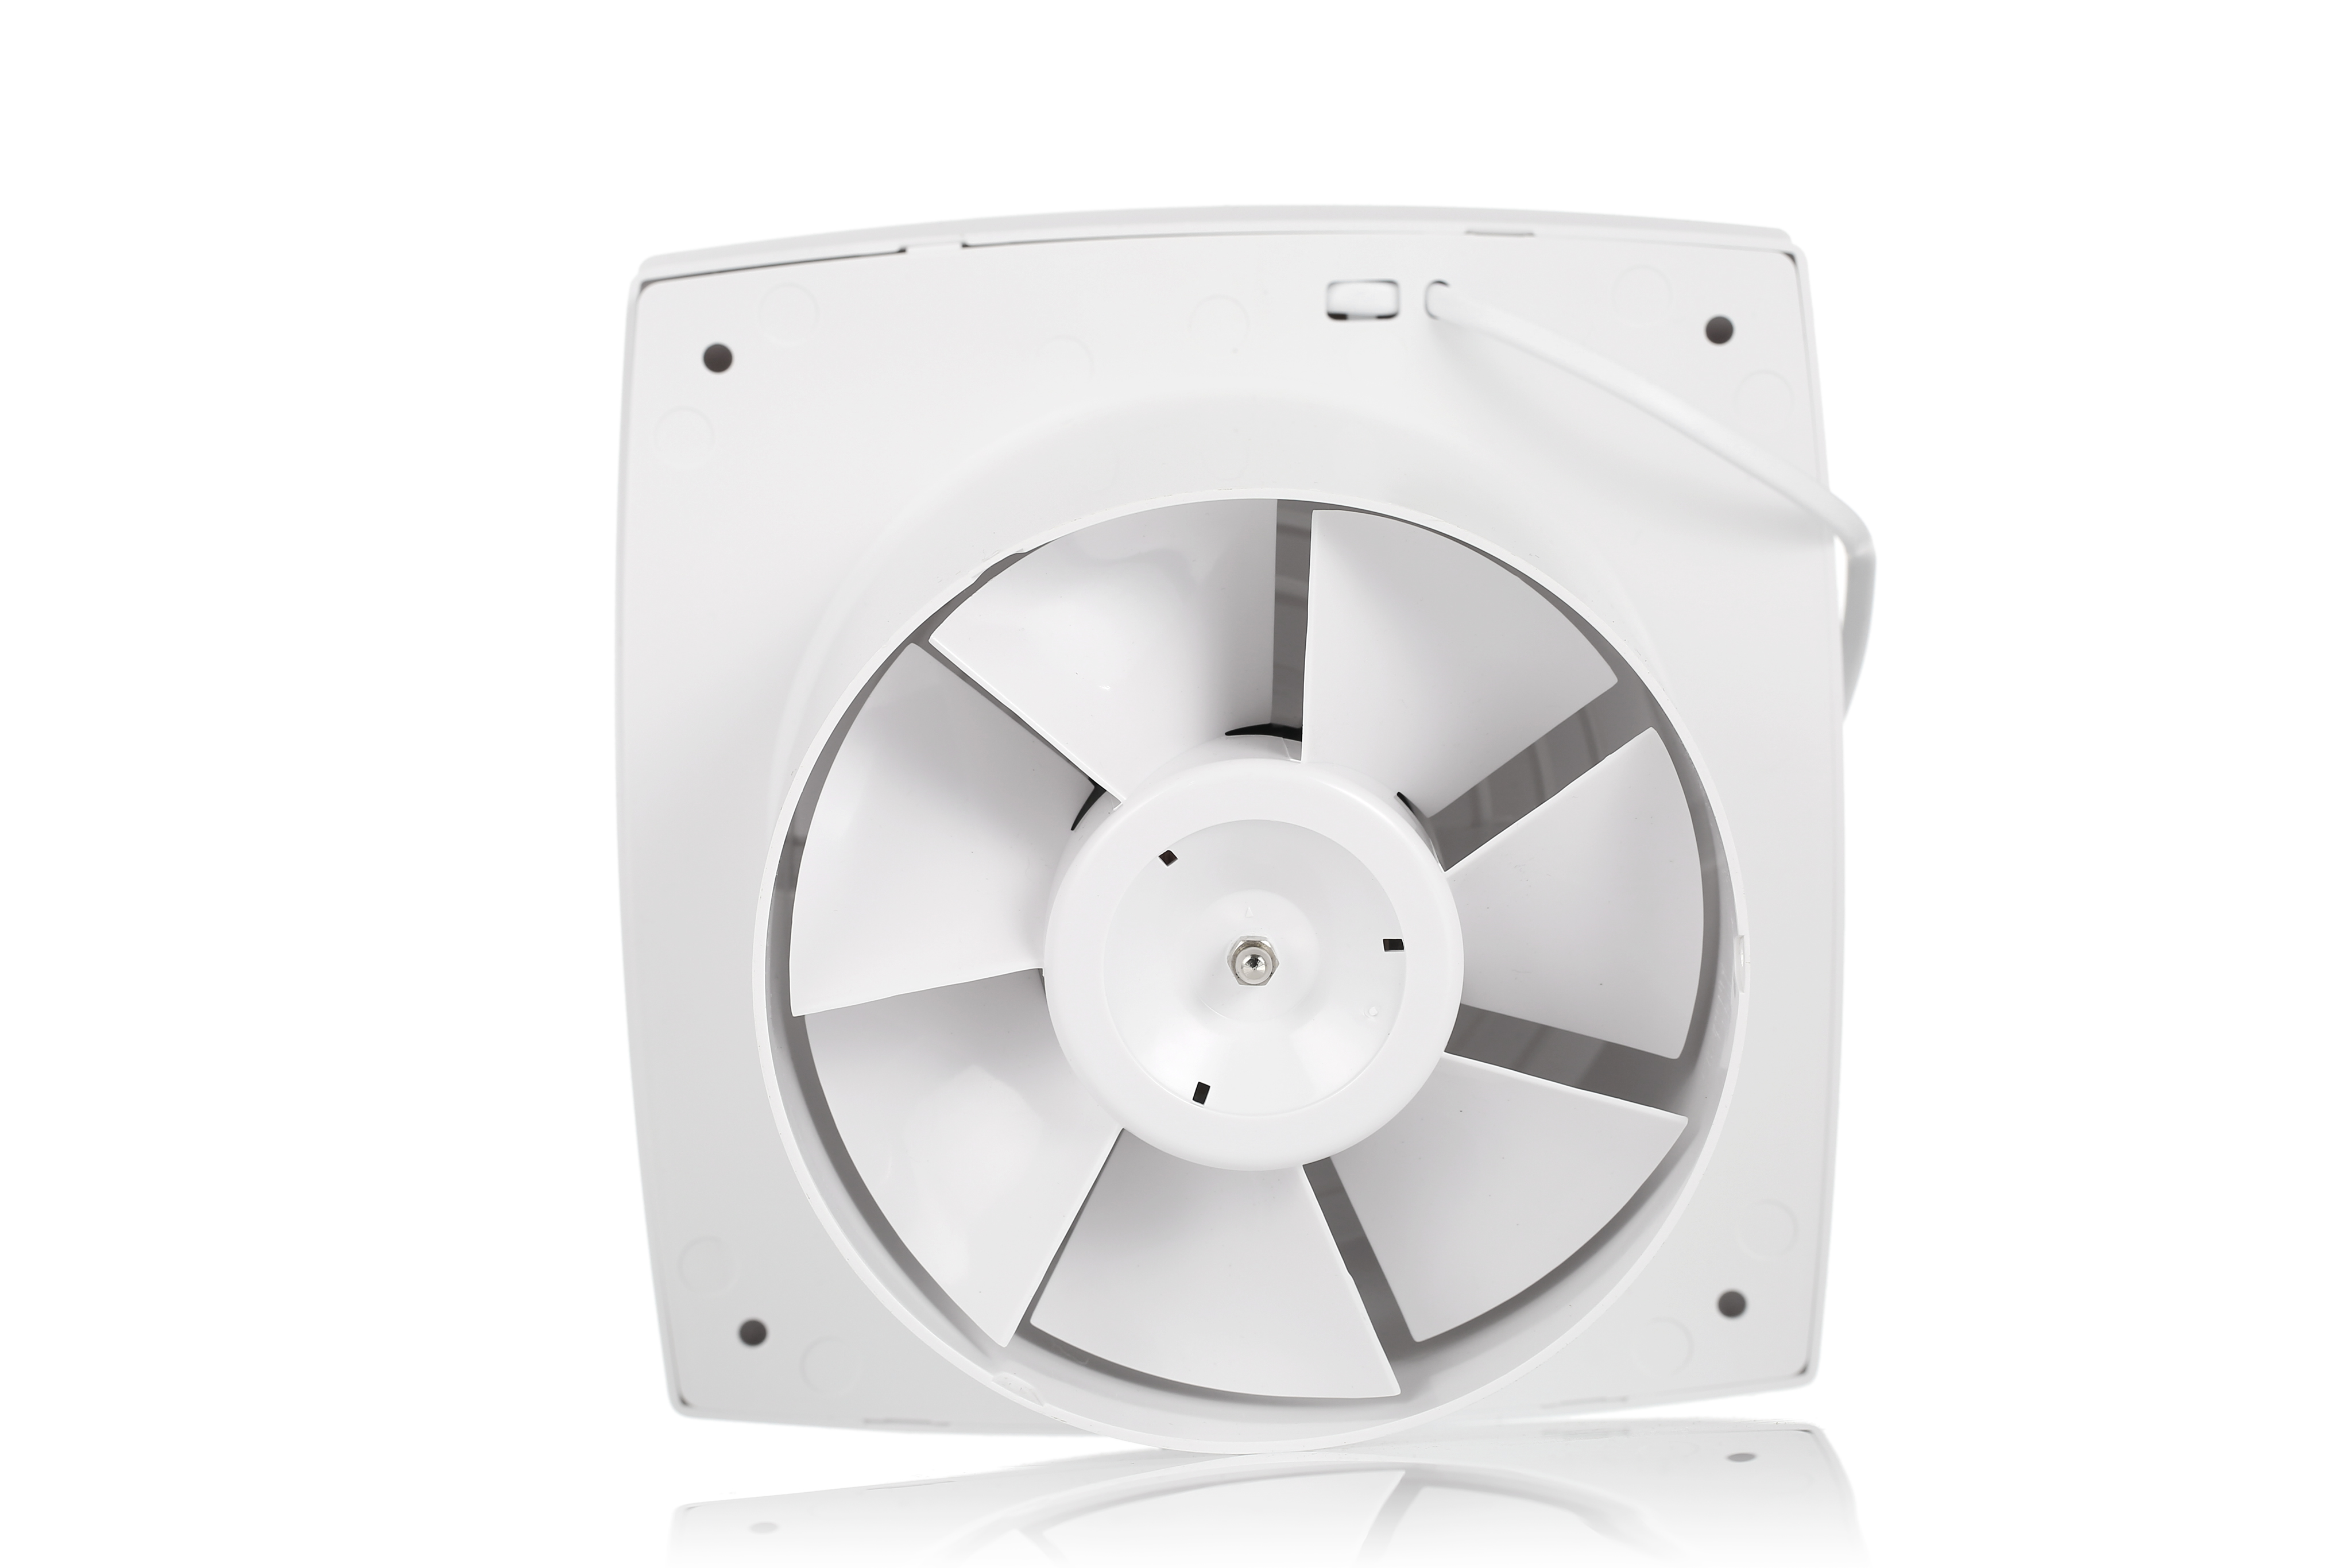 6 inch 150mm small light wall mounted exhaust fan bathroom for 6 bathroom exhaust fan